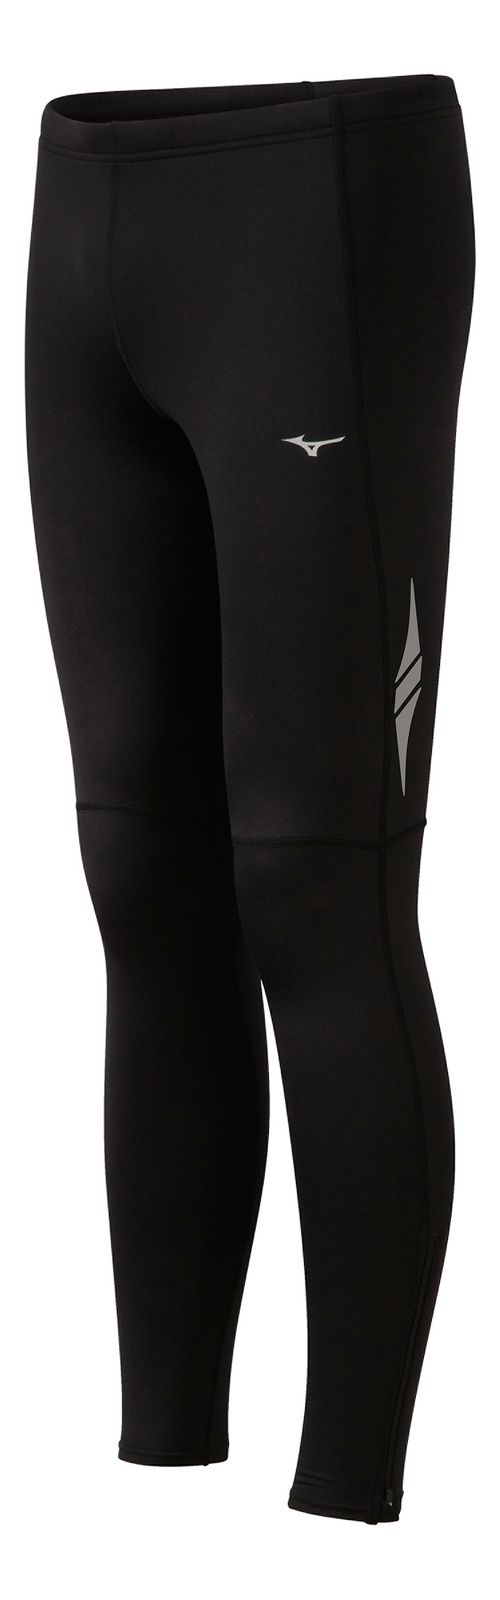 Mens Mizuno BT Layered Fitted Tights - Black M